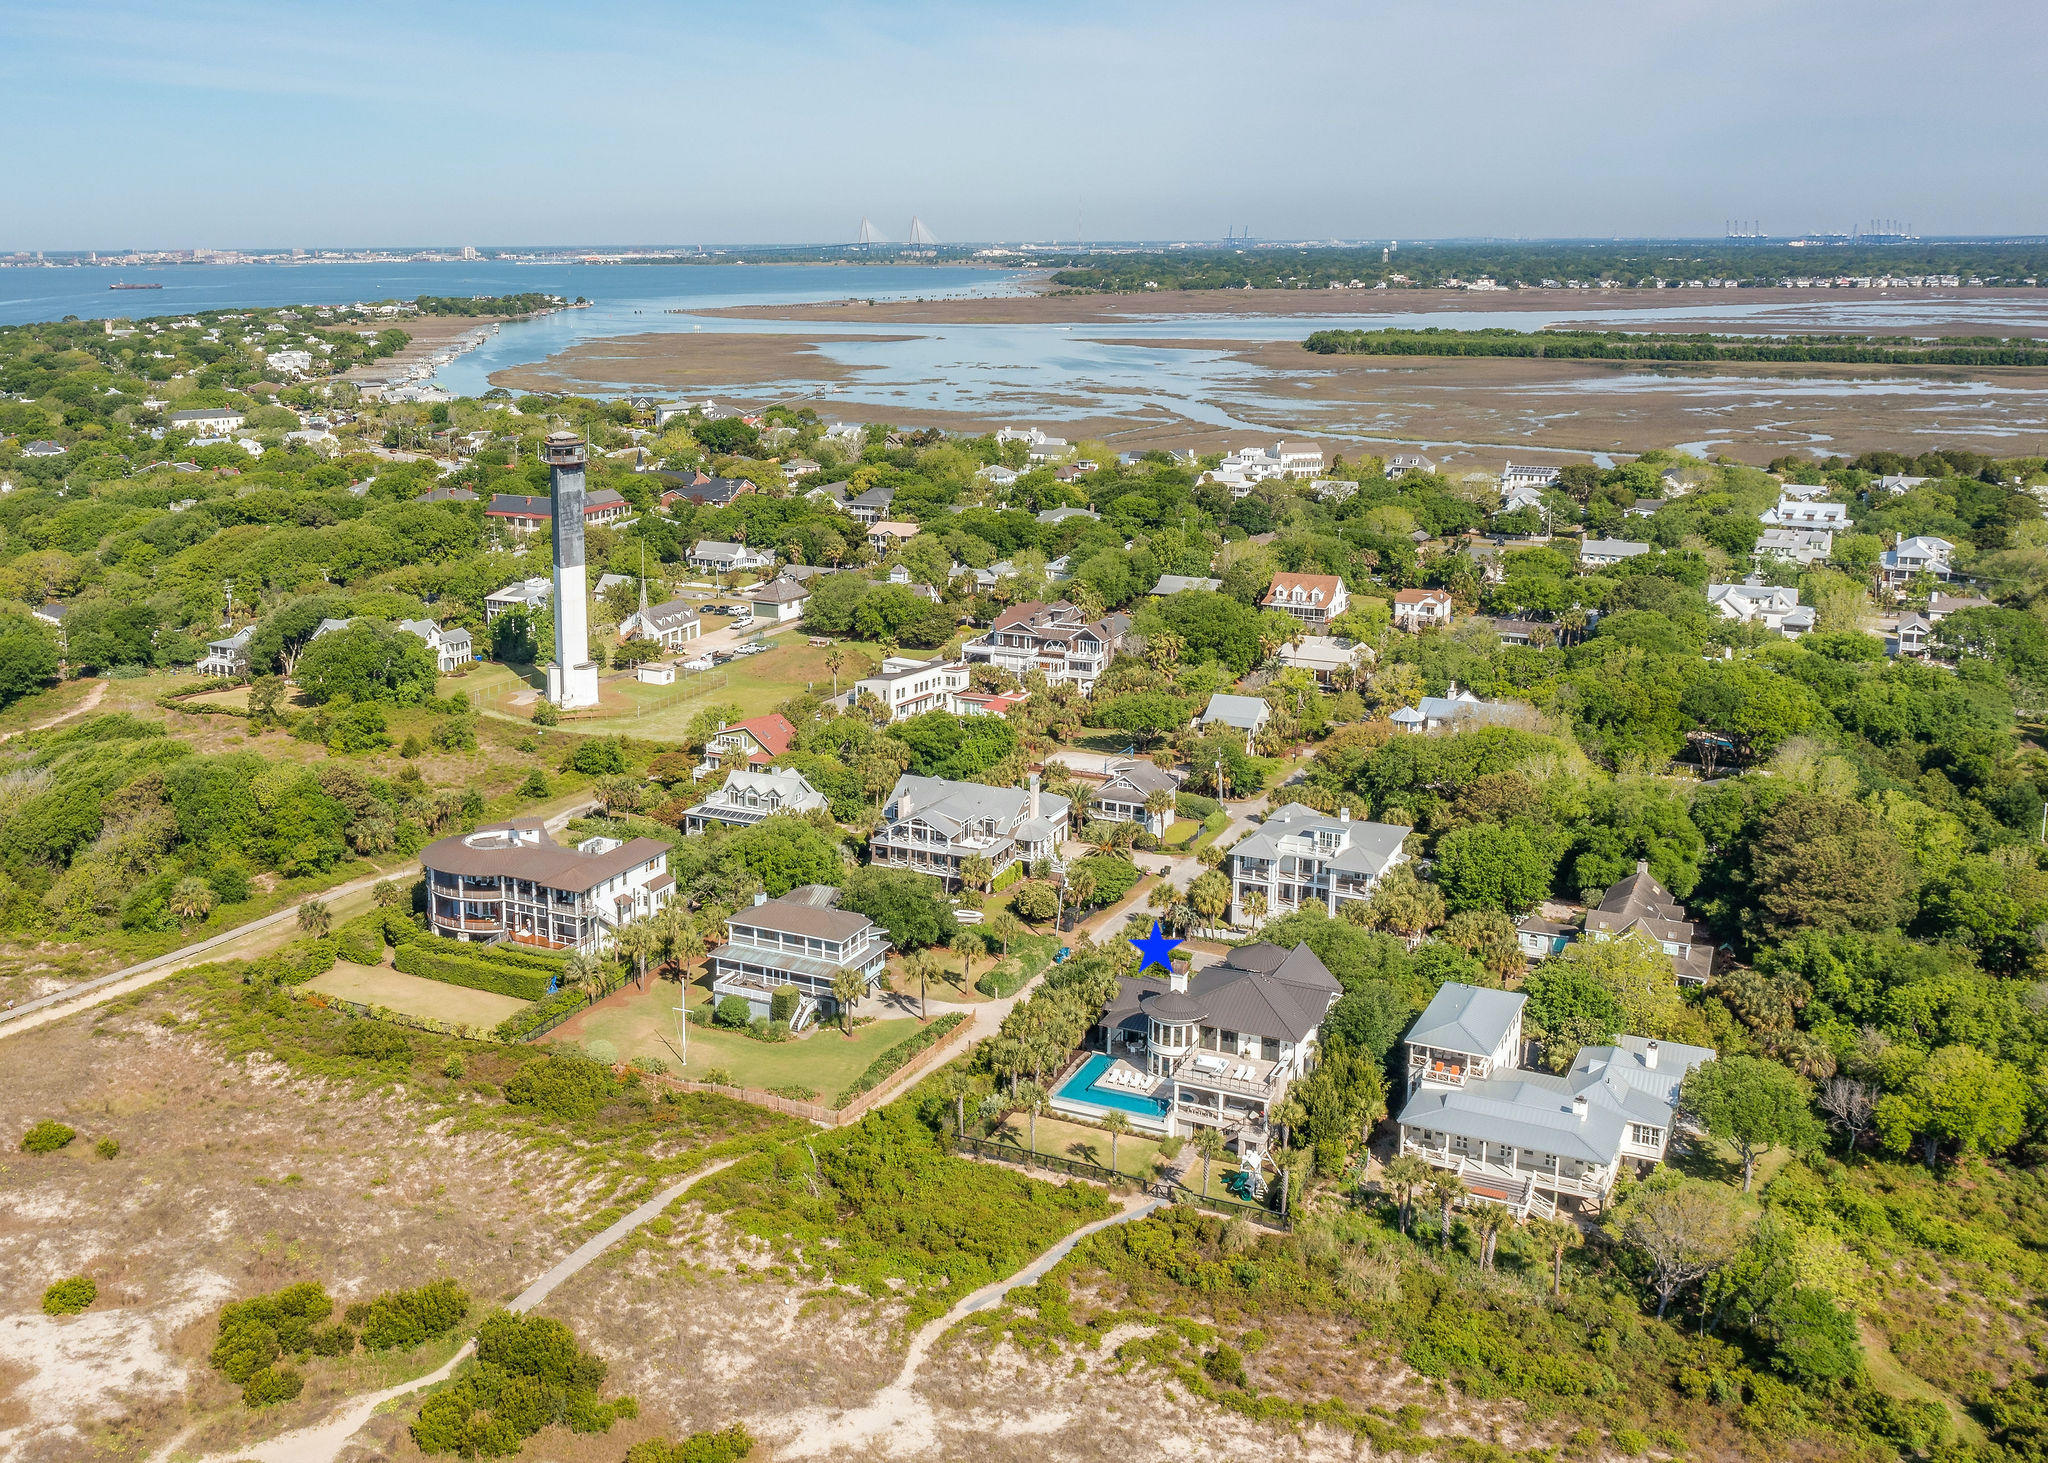 Sullivans Island Homes For Sale - 1901 Thee, Sullivans Island, SC - 0